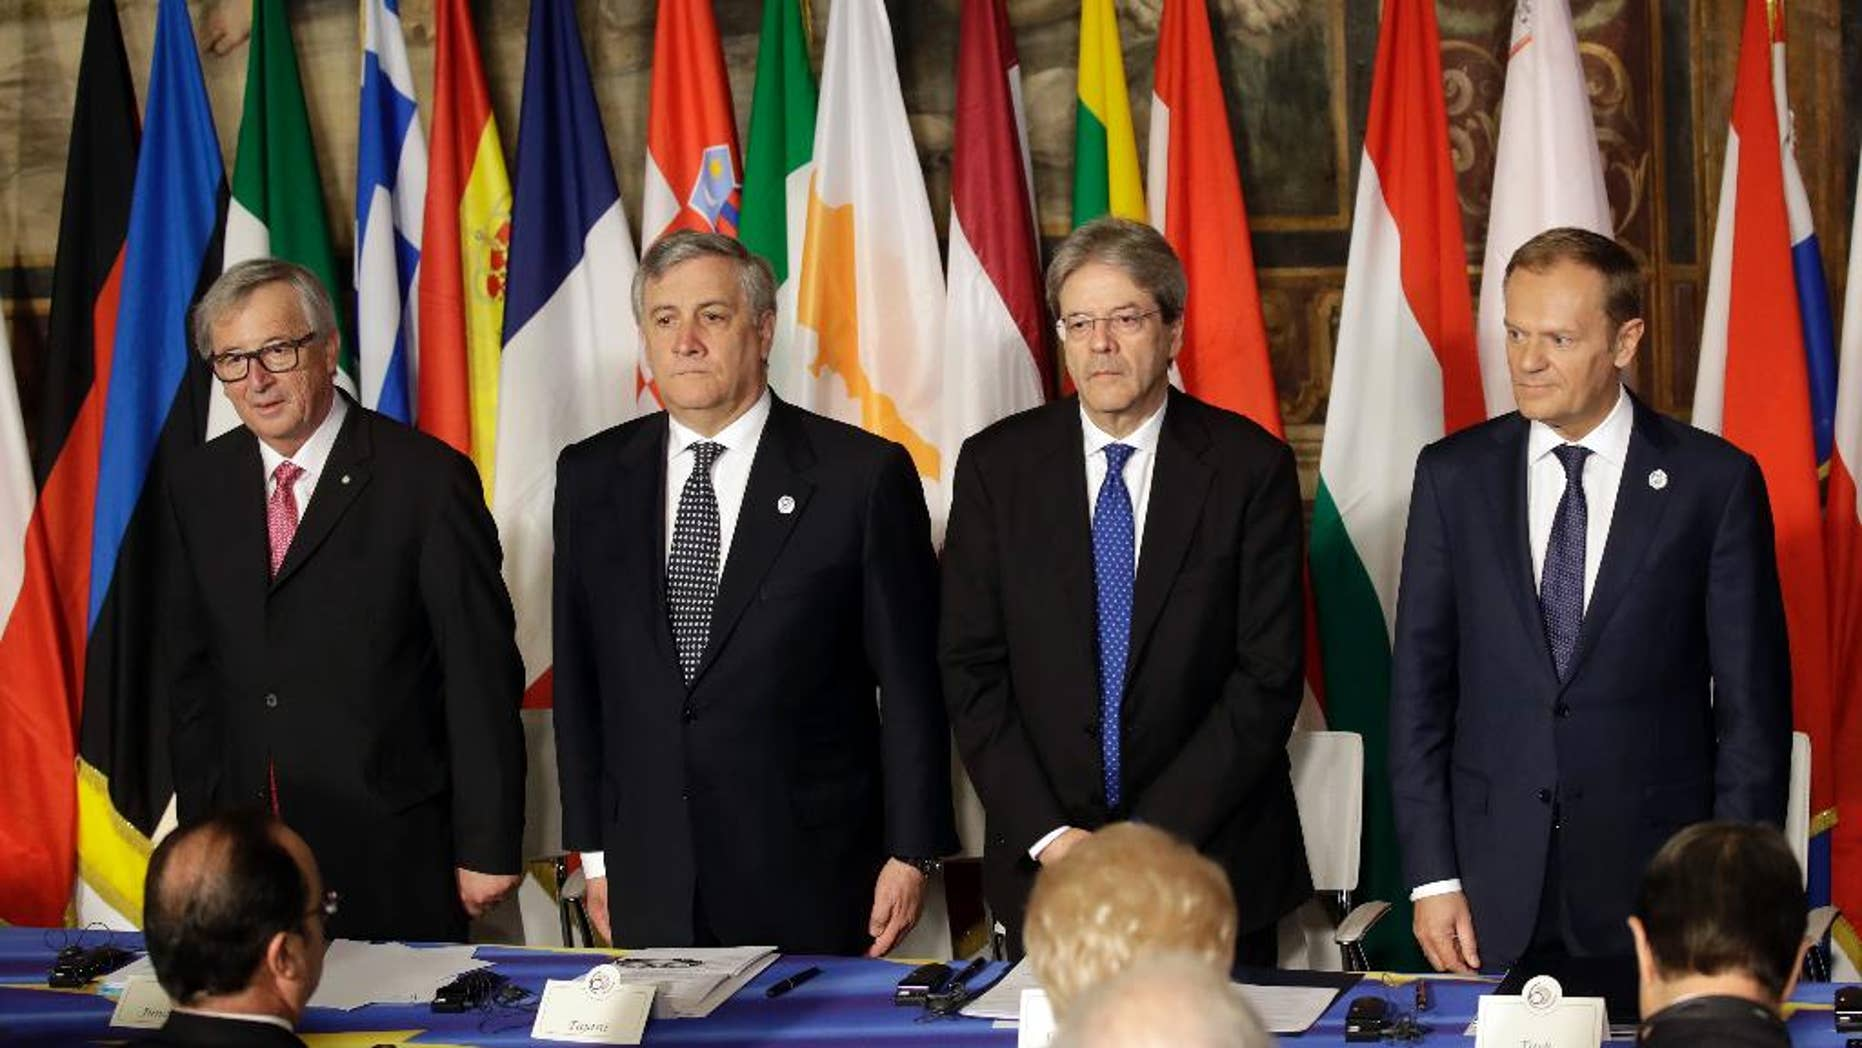 From left, European Commission President Jean-Claude Juncker, European Parliament President Antonio Tajani, Italian Prime Minister Paolo Gentiloni and European Council President Donald Tusk wait for the start of a meeting in the Orazi and Curiazi Hall at the Palazzo dei Conservatori during an EU summit in Rome on Saturday, March 25, 2017. European Union leaders were gathering in Rome to mark the 60th anniversary of their founding treaty and chart a way ahead following the decision of Britain to leave the 28-nation bloc. (AP Photo/Alessandra Tarantino)